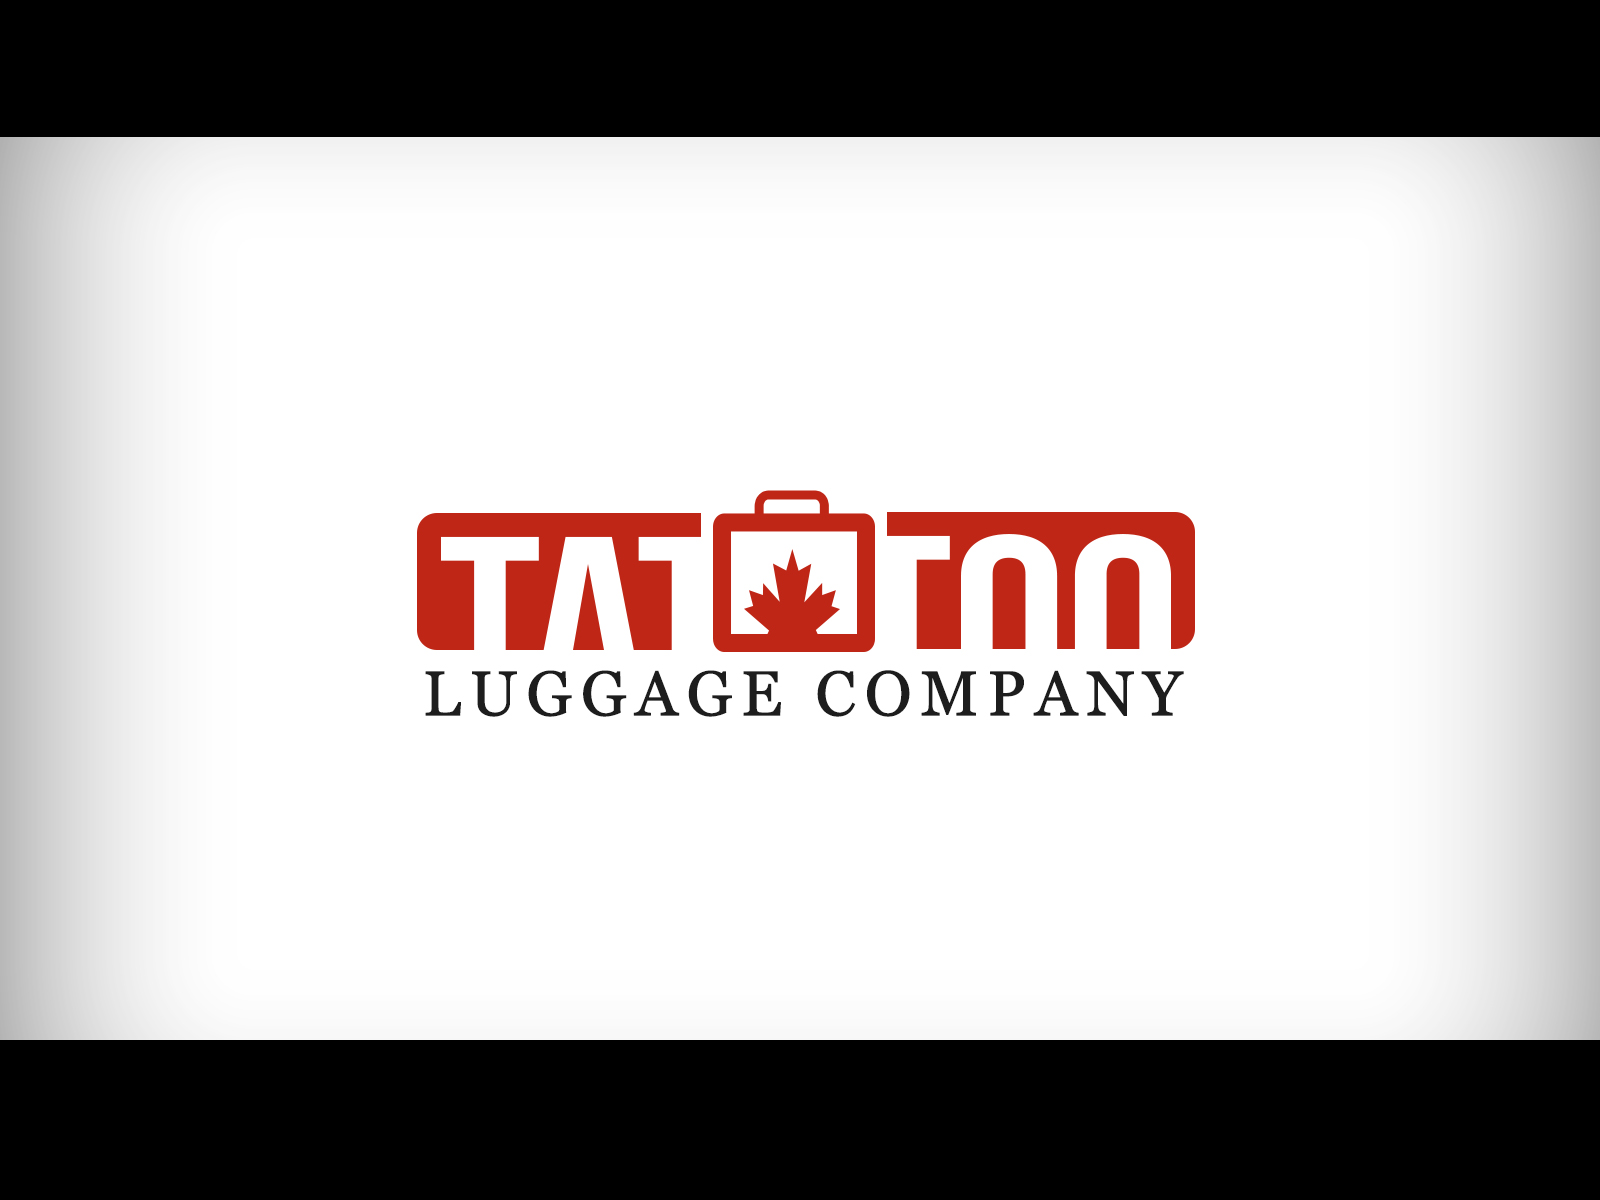 Logo Design by Virgilio Pineda III - Entry No. 175 in the Logo Design Contest Artistic Logo Design for Tattoo Luggage Company.